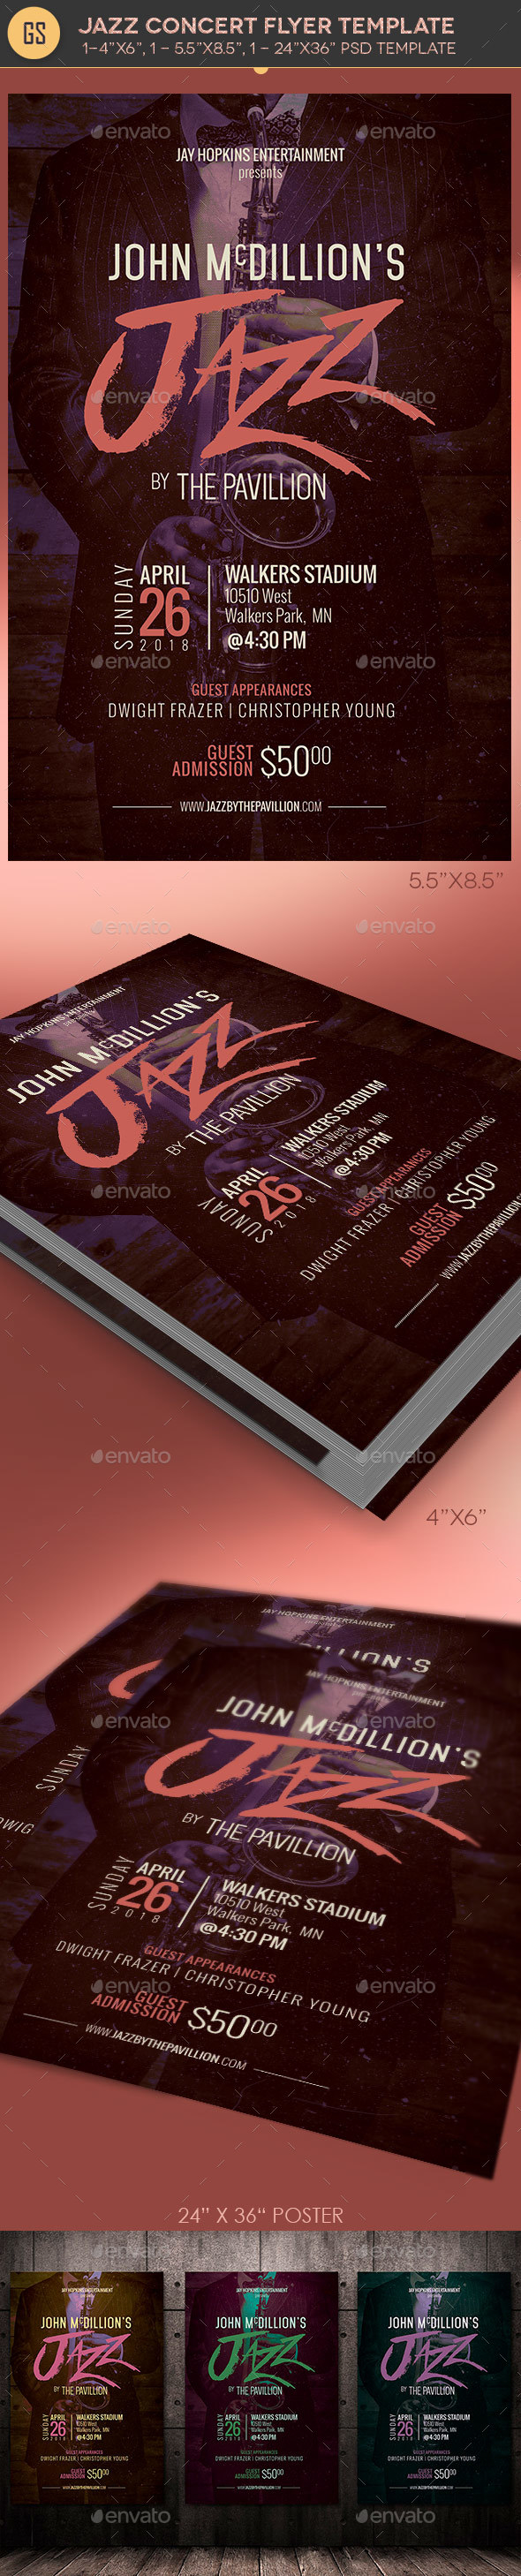 Jazz Concert Flyer Poster Template - Events Flyers